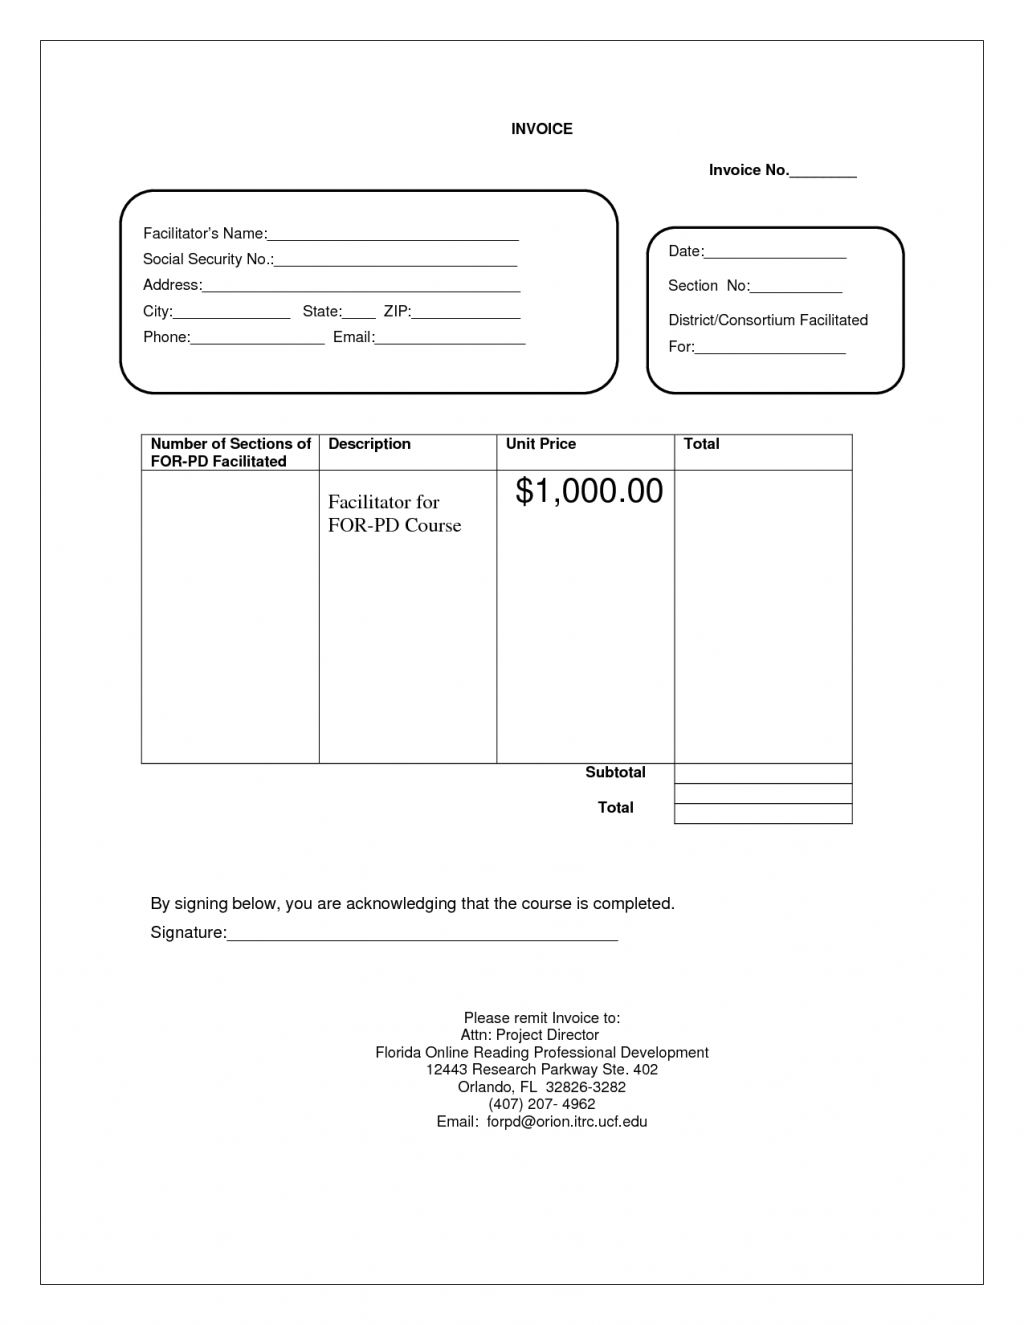 Invoice Template Excel Invoice Template Google Docs Spreadsheet Templates for Business Google Spreadshee Spreadsheet Templates for Business Google Spreadshee Invoice Template Free